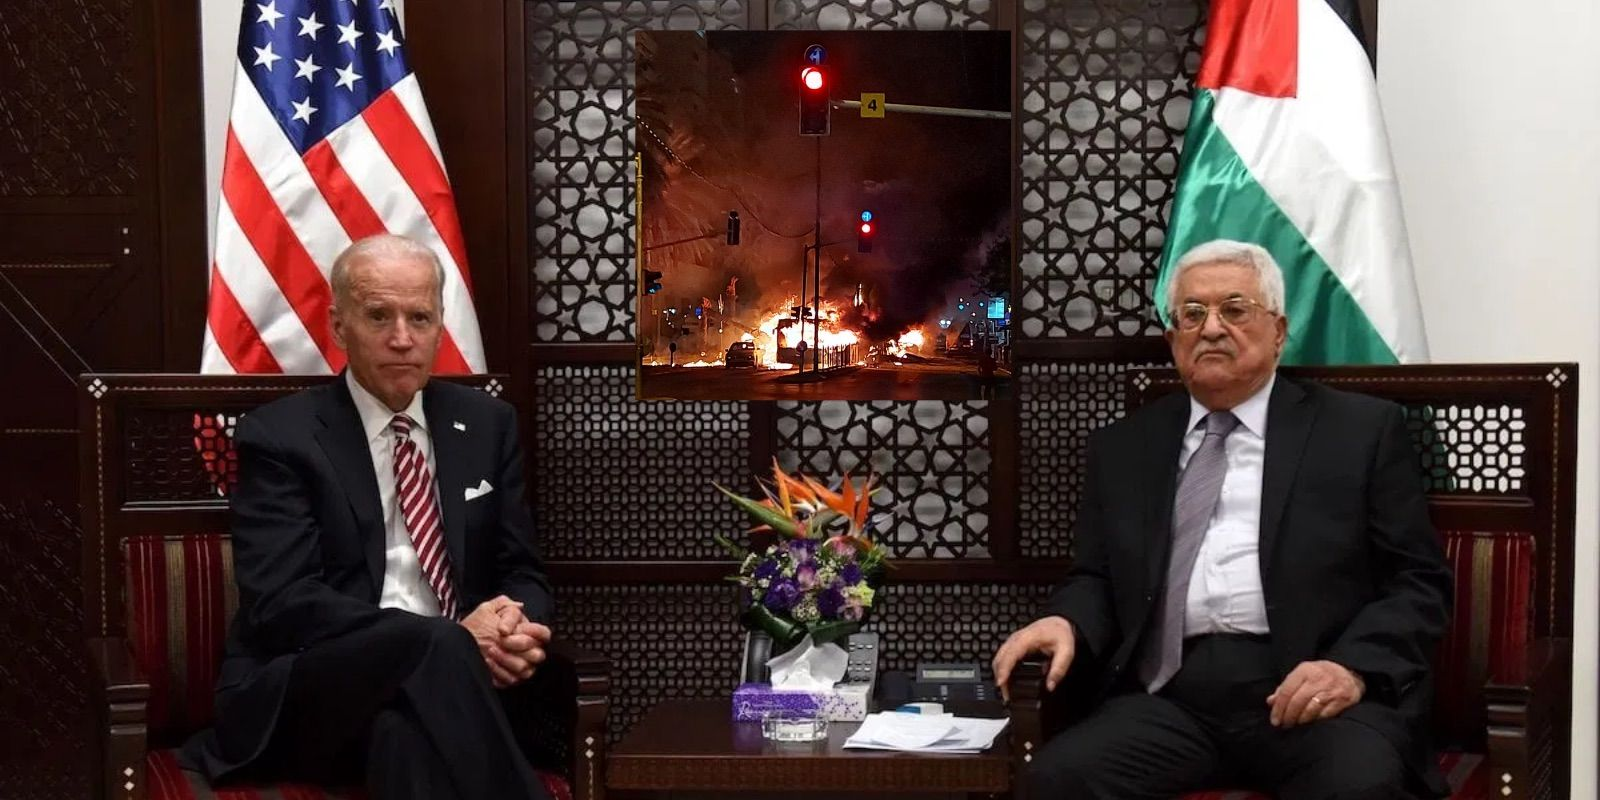 Biden authorized $235 million in funding to Palestinians one month before Hamas' attacks on Israel